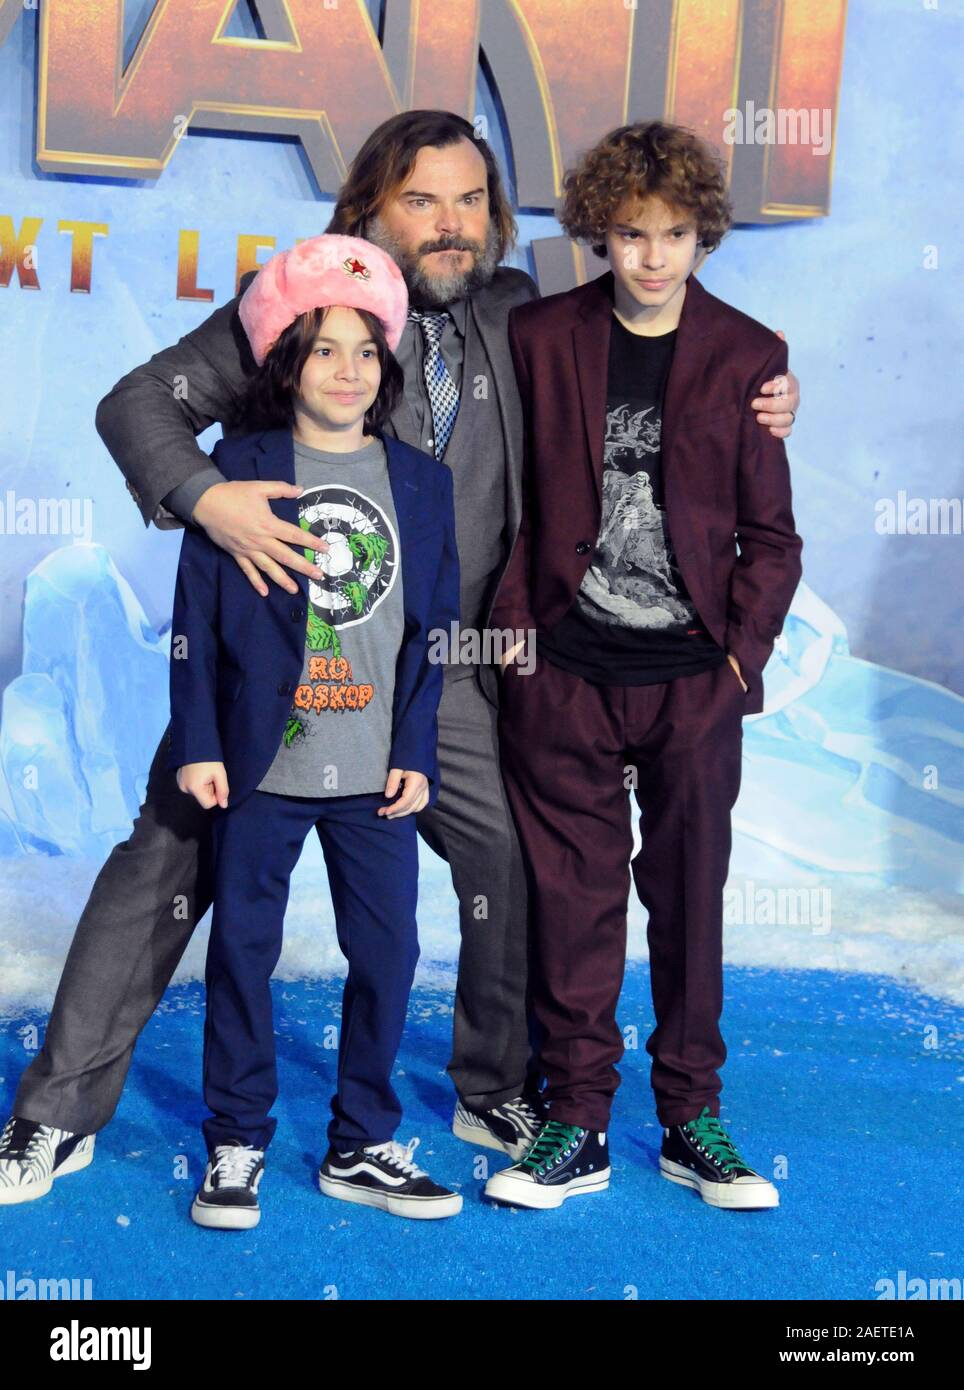 Thomas David Black And Samuel Jason Black High Resolution Stock Photography And Images Alamy Genealogy for david thomas black (deceased) family tree on geni, with over 200 million profiles of ancestors and living relatives. https www alamy com hollywood california usa 9th december 2019 actor jack black and sons thomas david black and samuel jason black attend sony pictures presents the world premiere of jumanji the next level on december 9 2019 at tcl chinese theatre in hollywood california usa photo by barry kingalamy stock photo image336140038 html